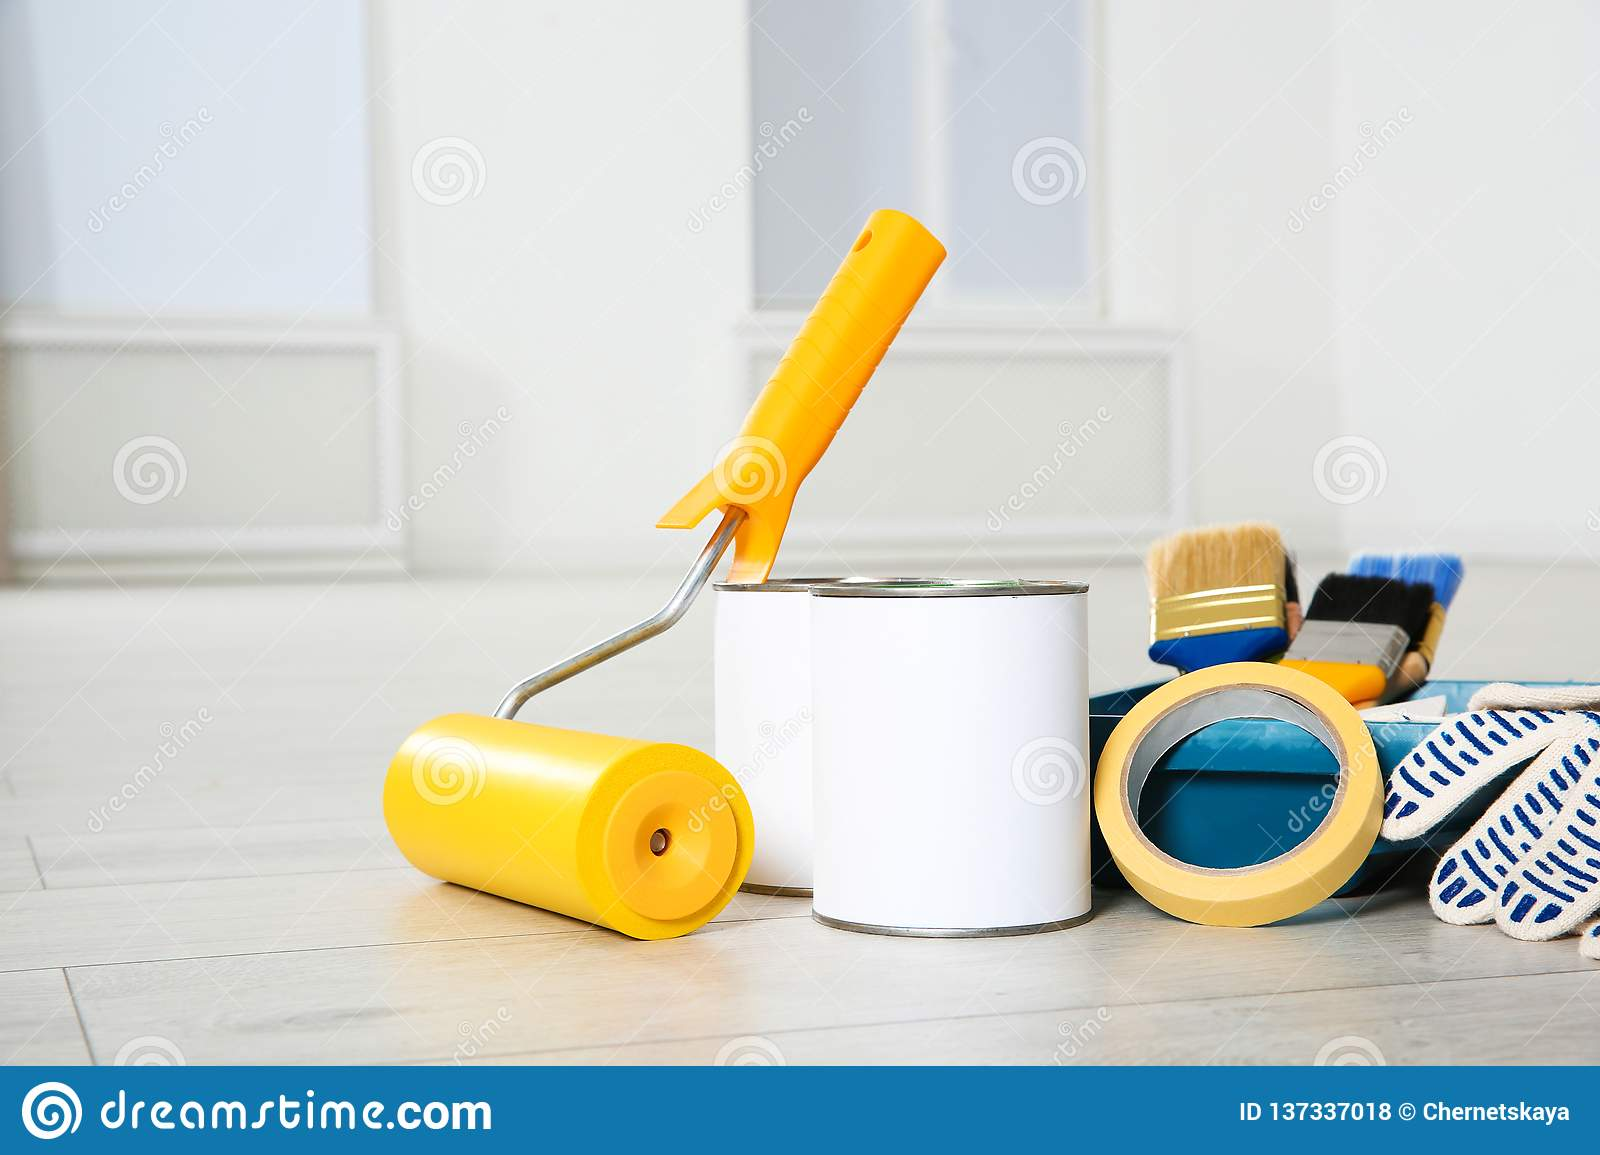 Cans Of Paint And Decorator Tools Stock Photo - Image of ...